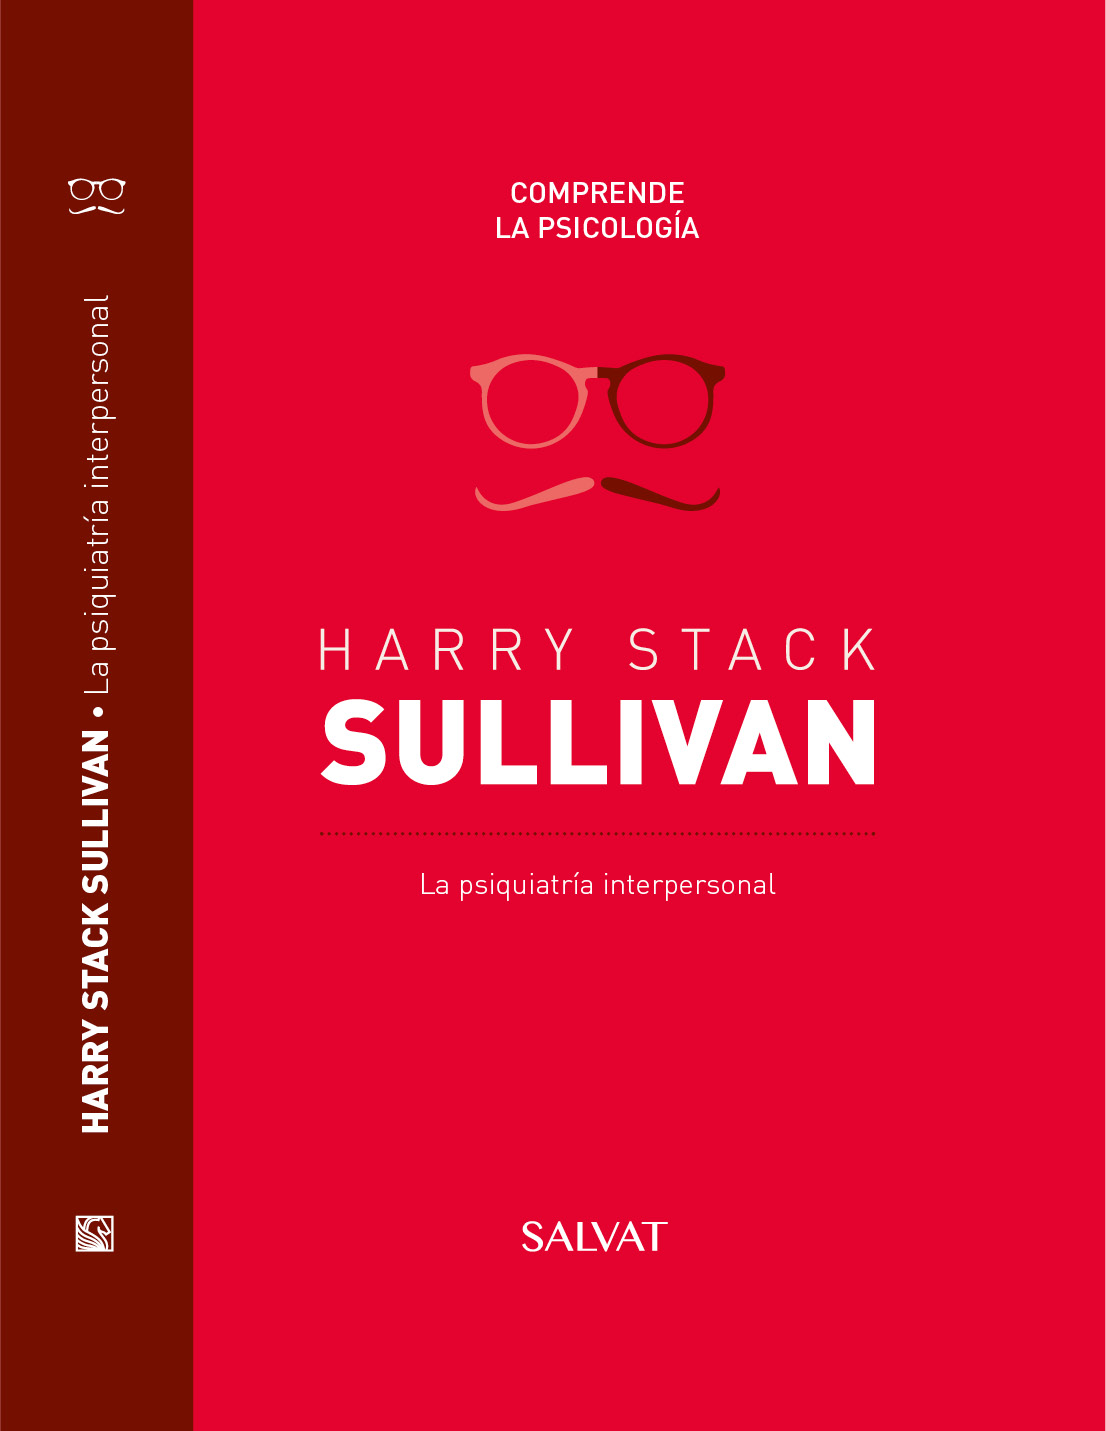 La teoría interpersonal de Harry Stack Sullivan